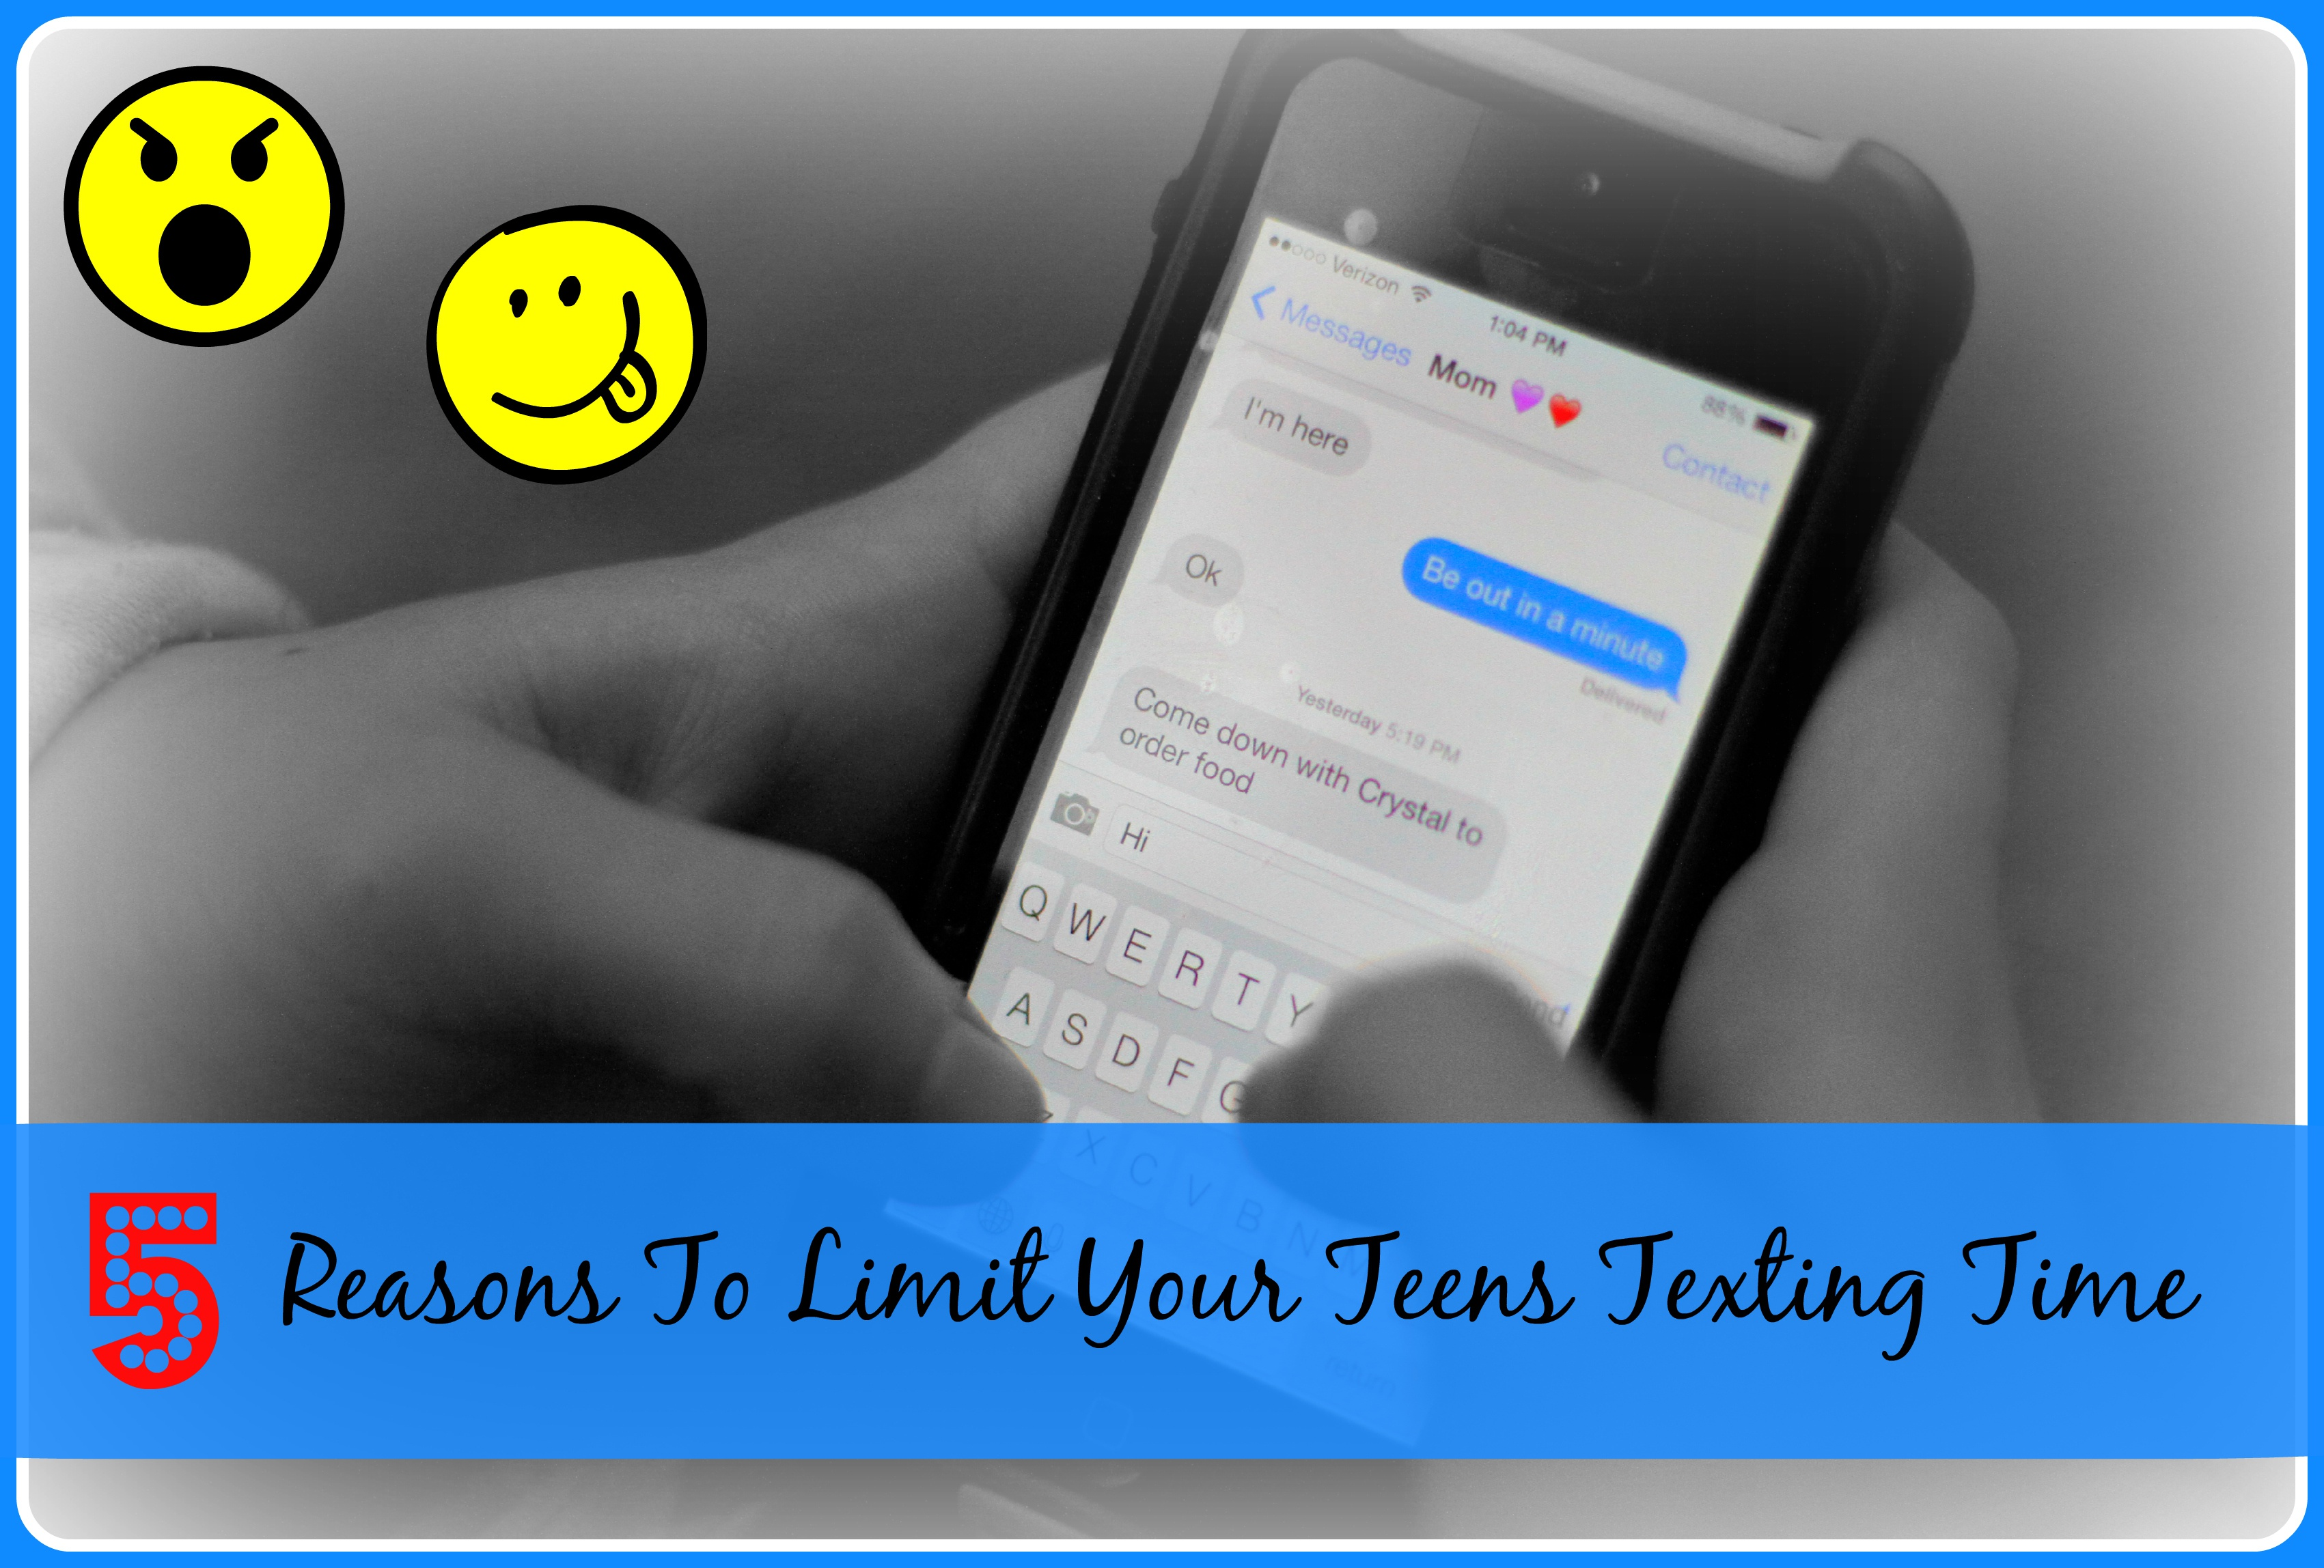 5 Reasons To Limit Your Teens Texting Time